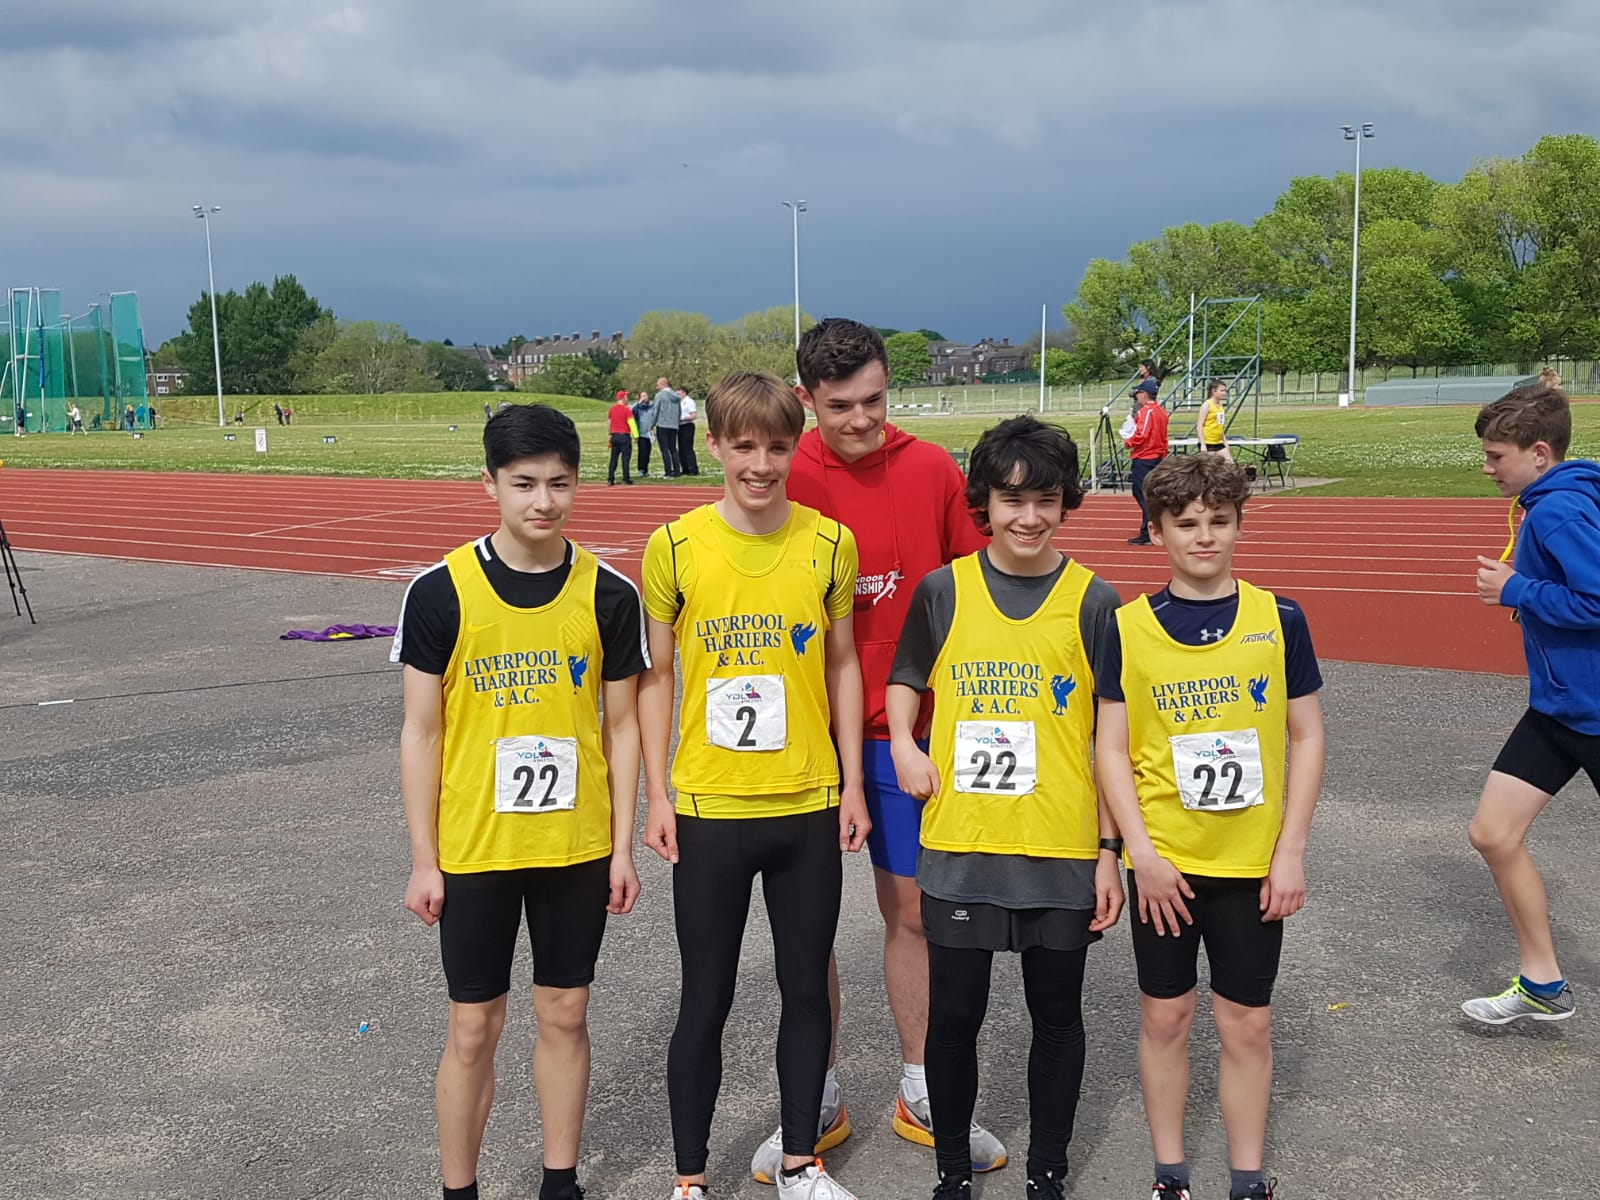 YDL Lower, Northern League & Round Up